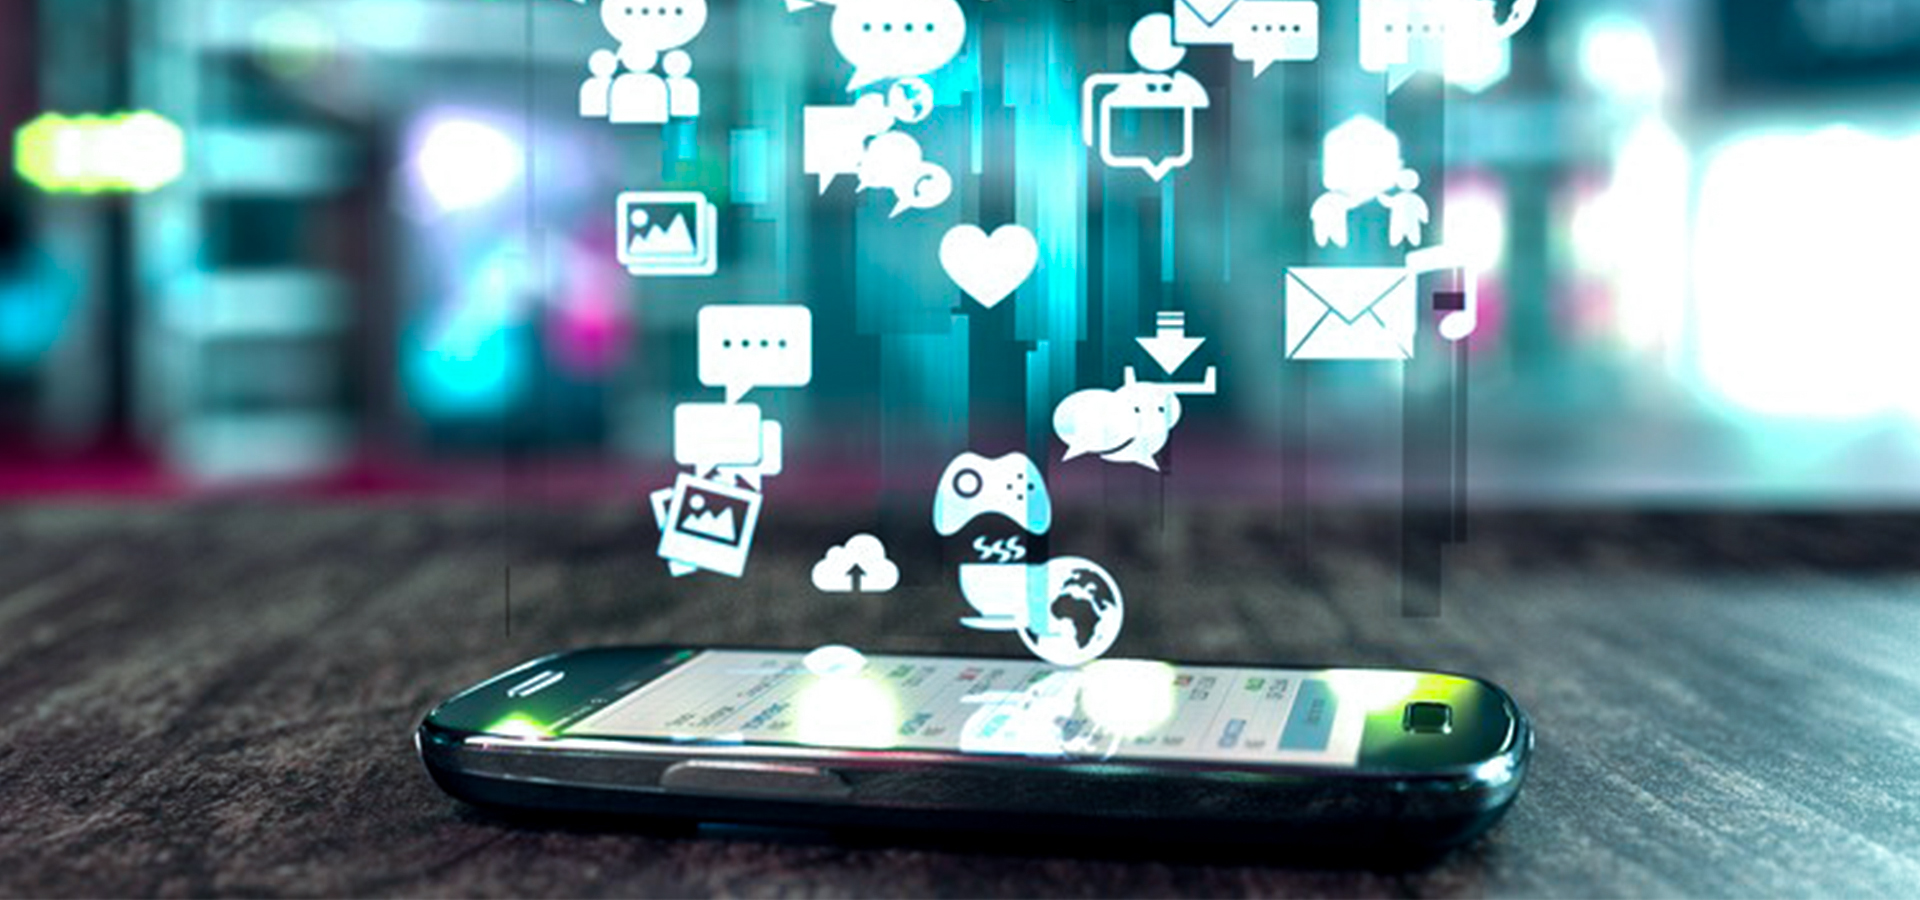 What is the future of mobile app development and communication?